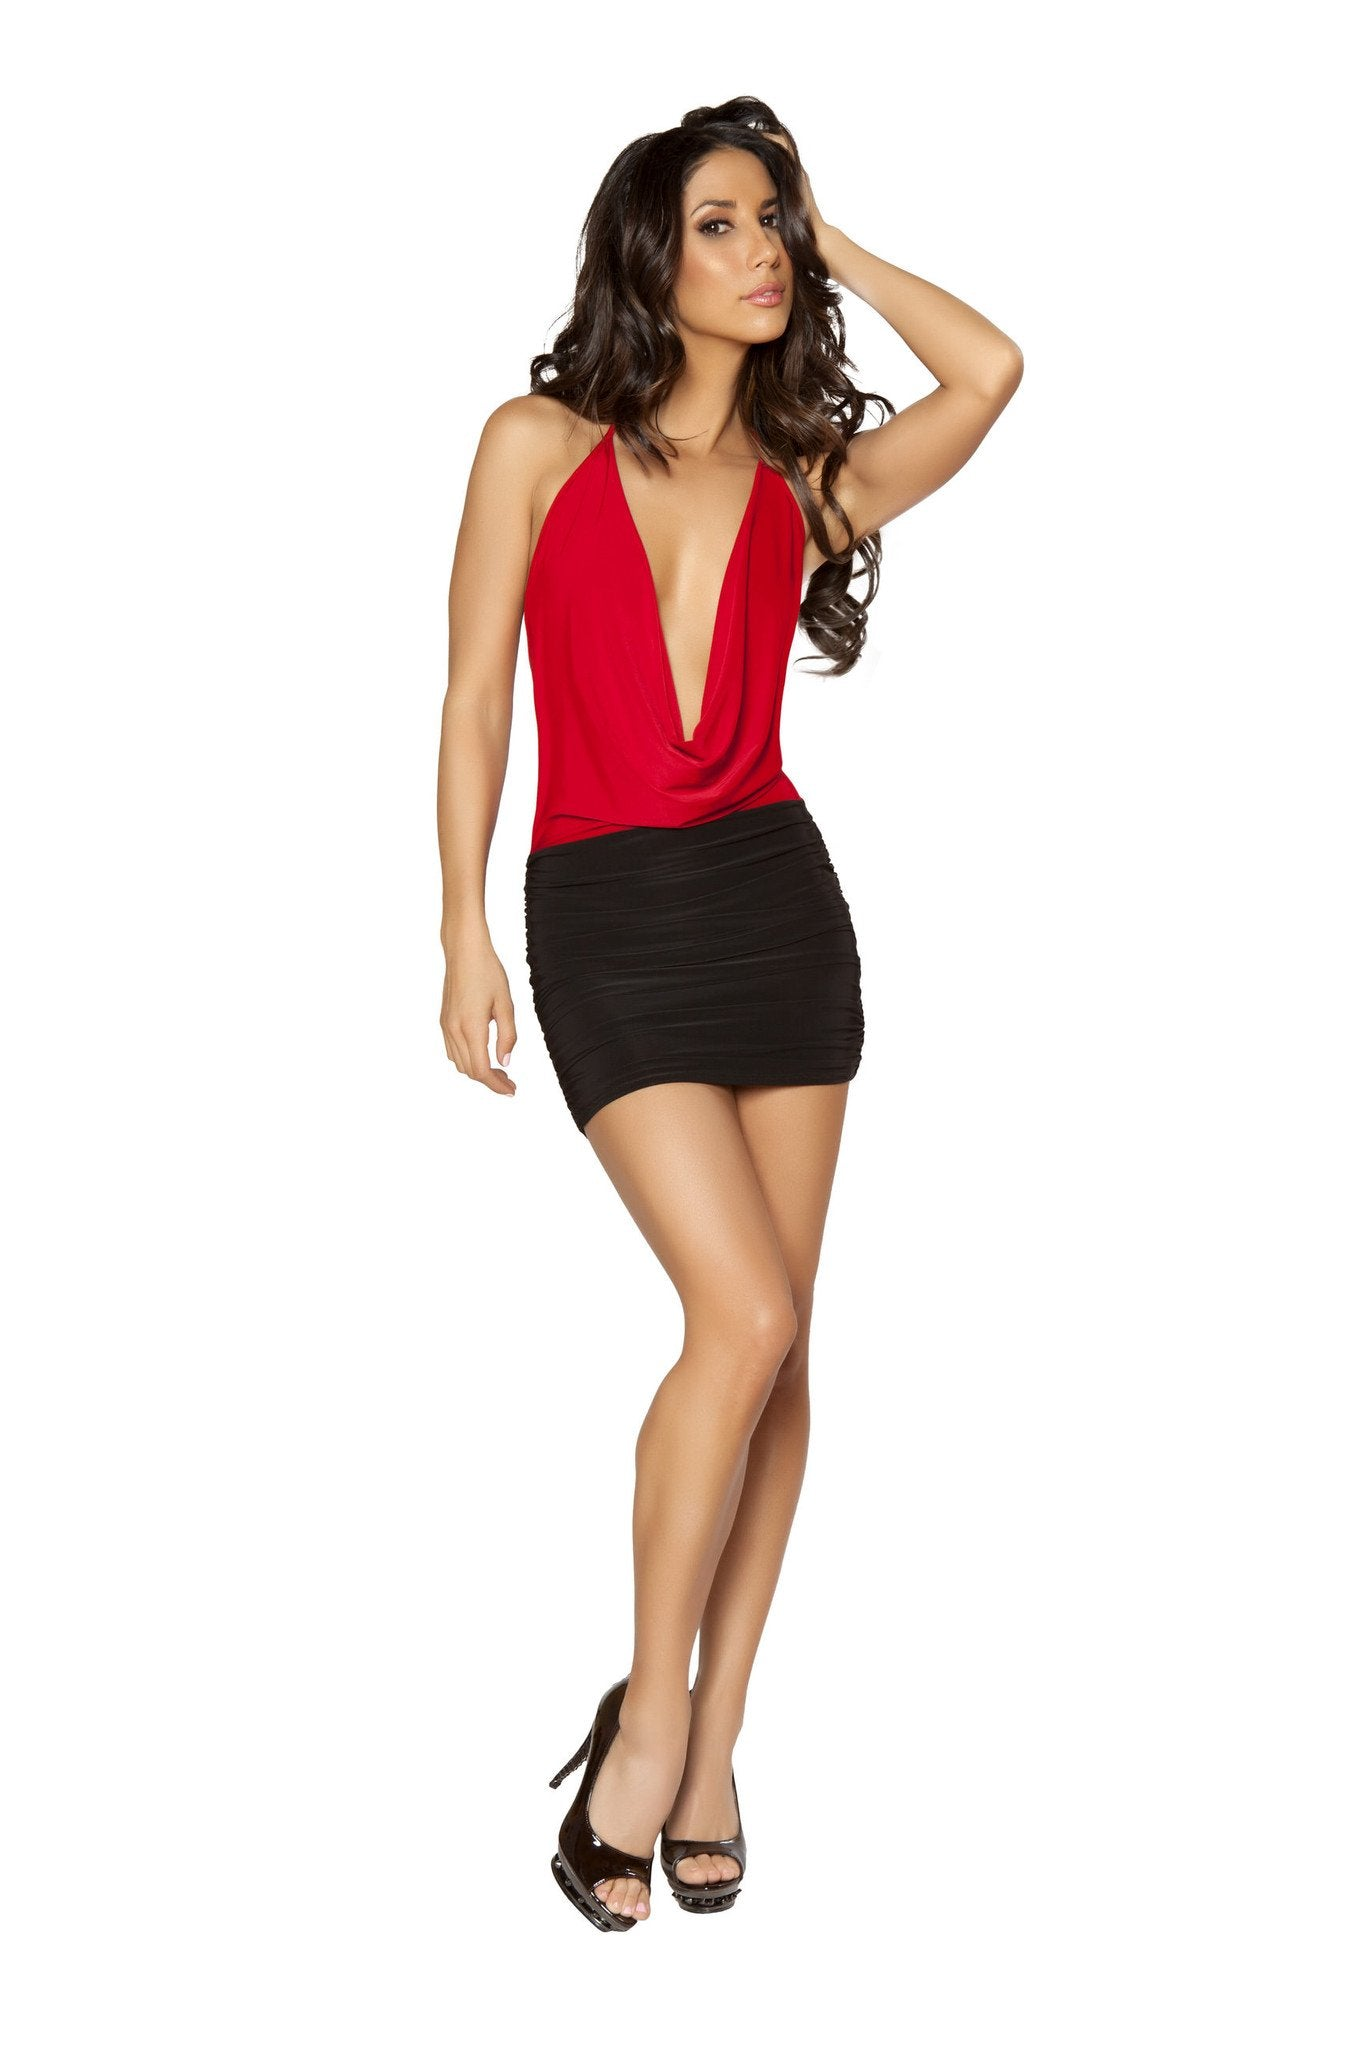 3135 - 1pc Two-Tone Low Cowl Neck Black and Red Mini Dress - PlaythingsMiami